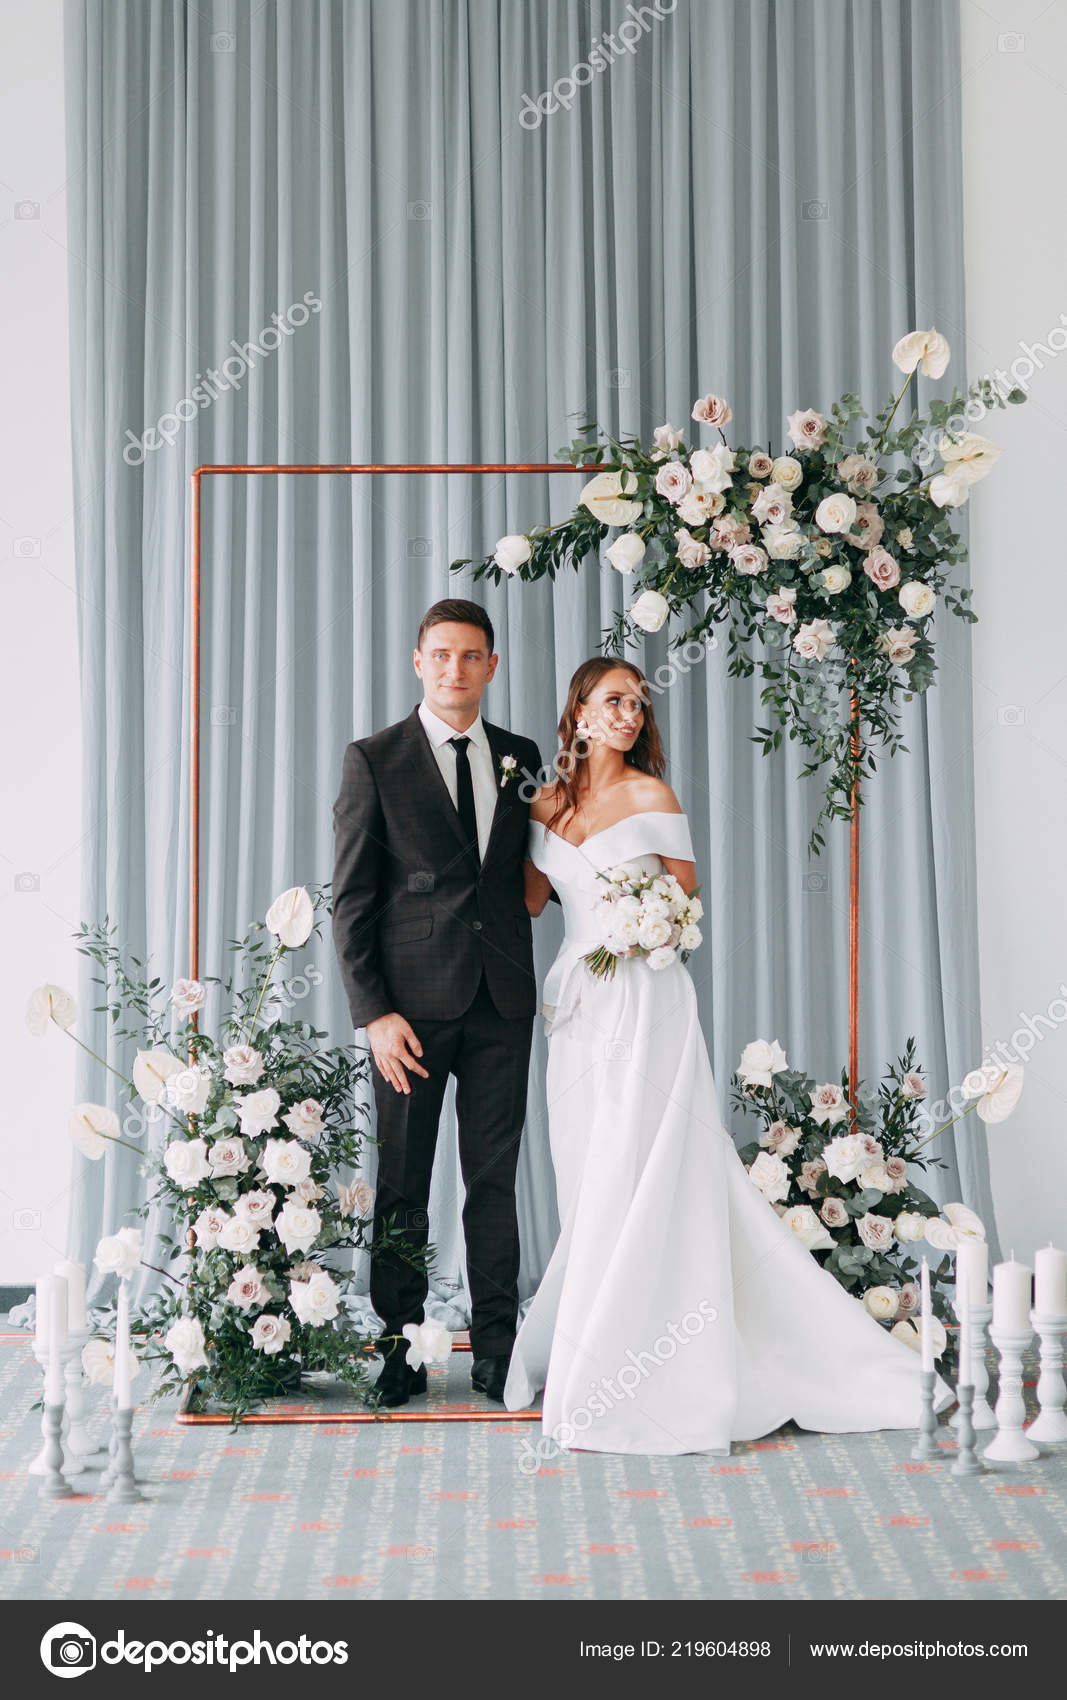 Stylish European Wedding Ceremony Bride Groom Surrounded Guests Arch